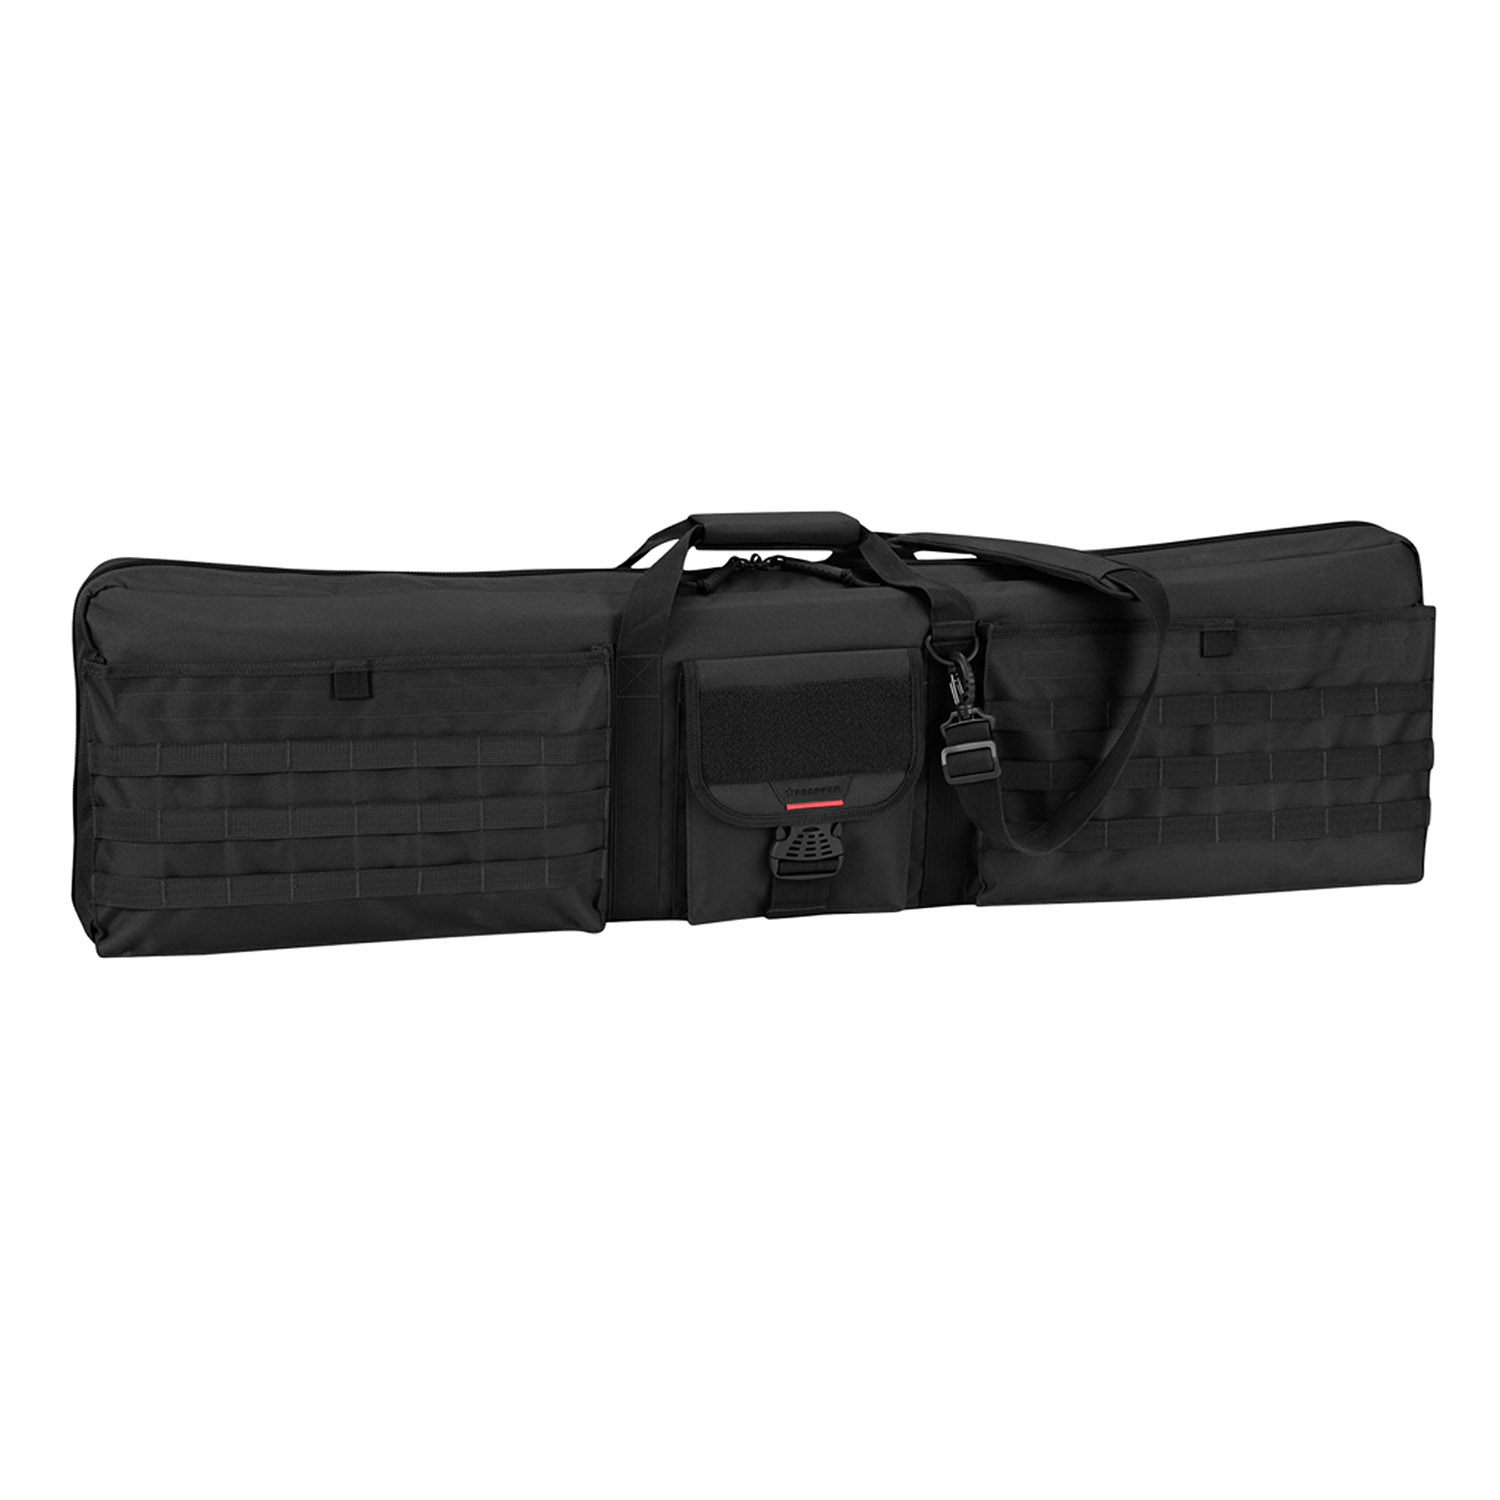 case 44 View our full line of rifle and shotgun cases we have everything from military cases to display cases ordered from smallest to largest comare each case and make the right choice for your gun case.